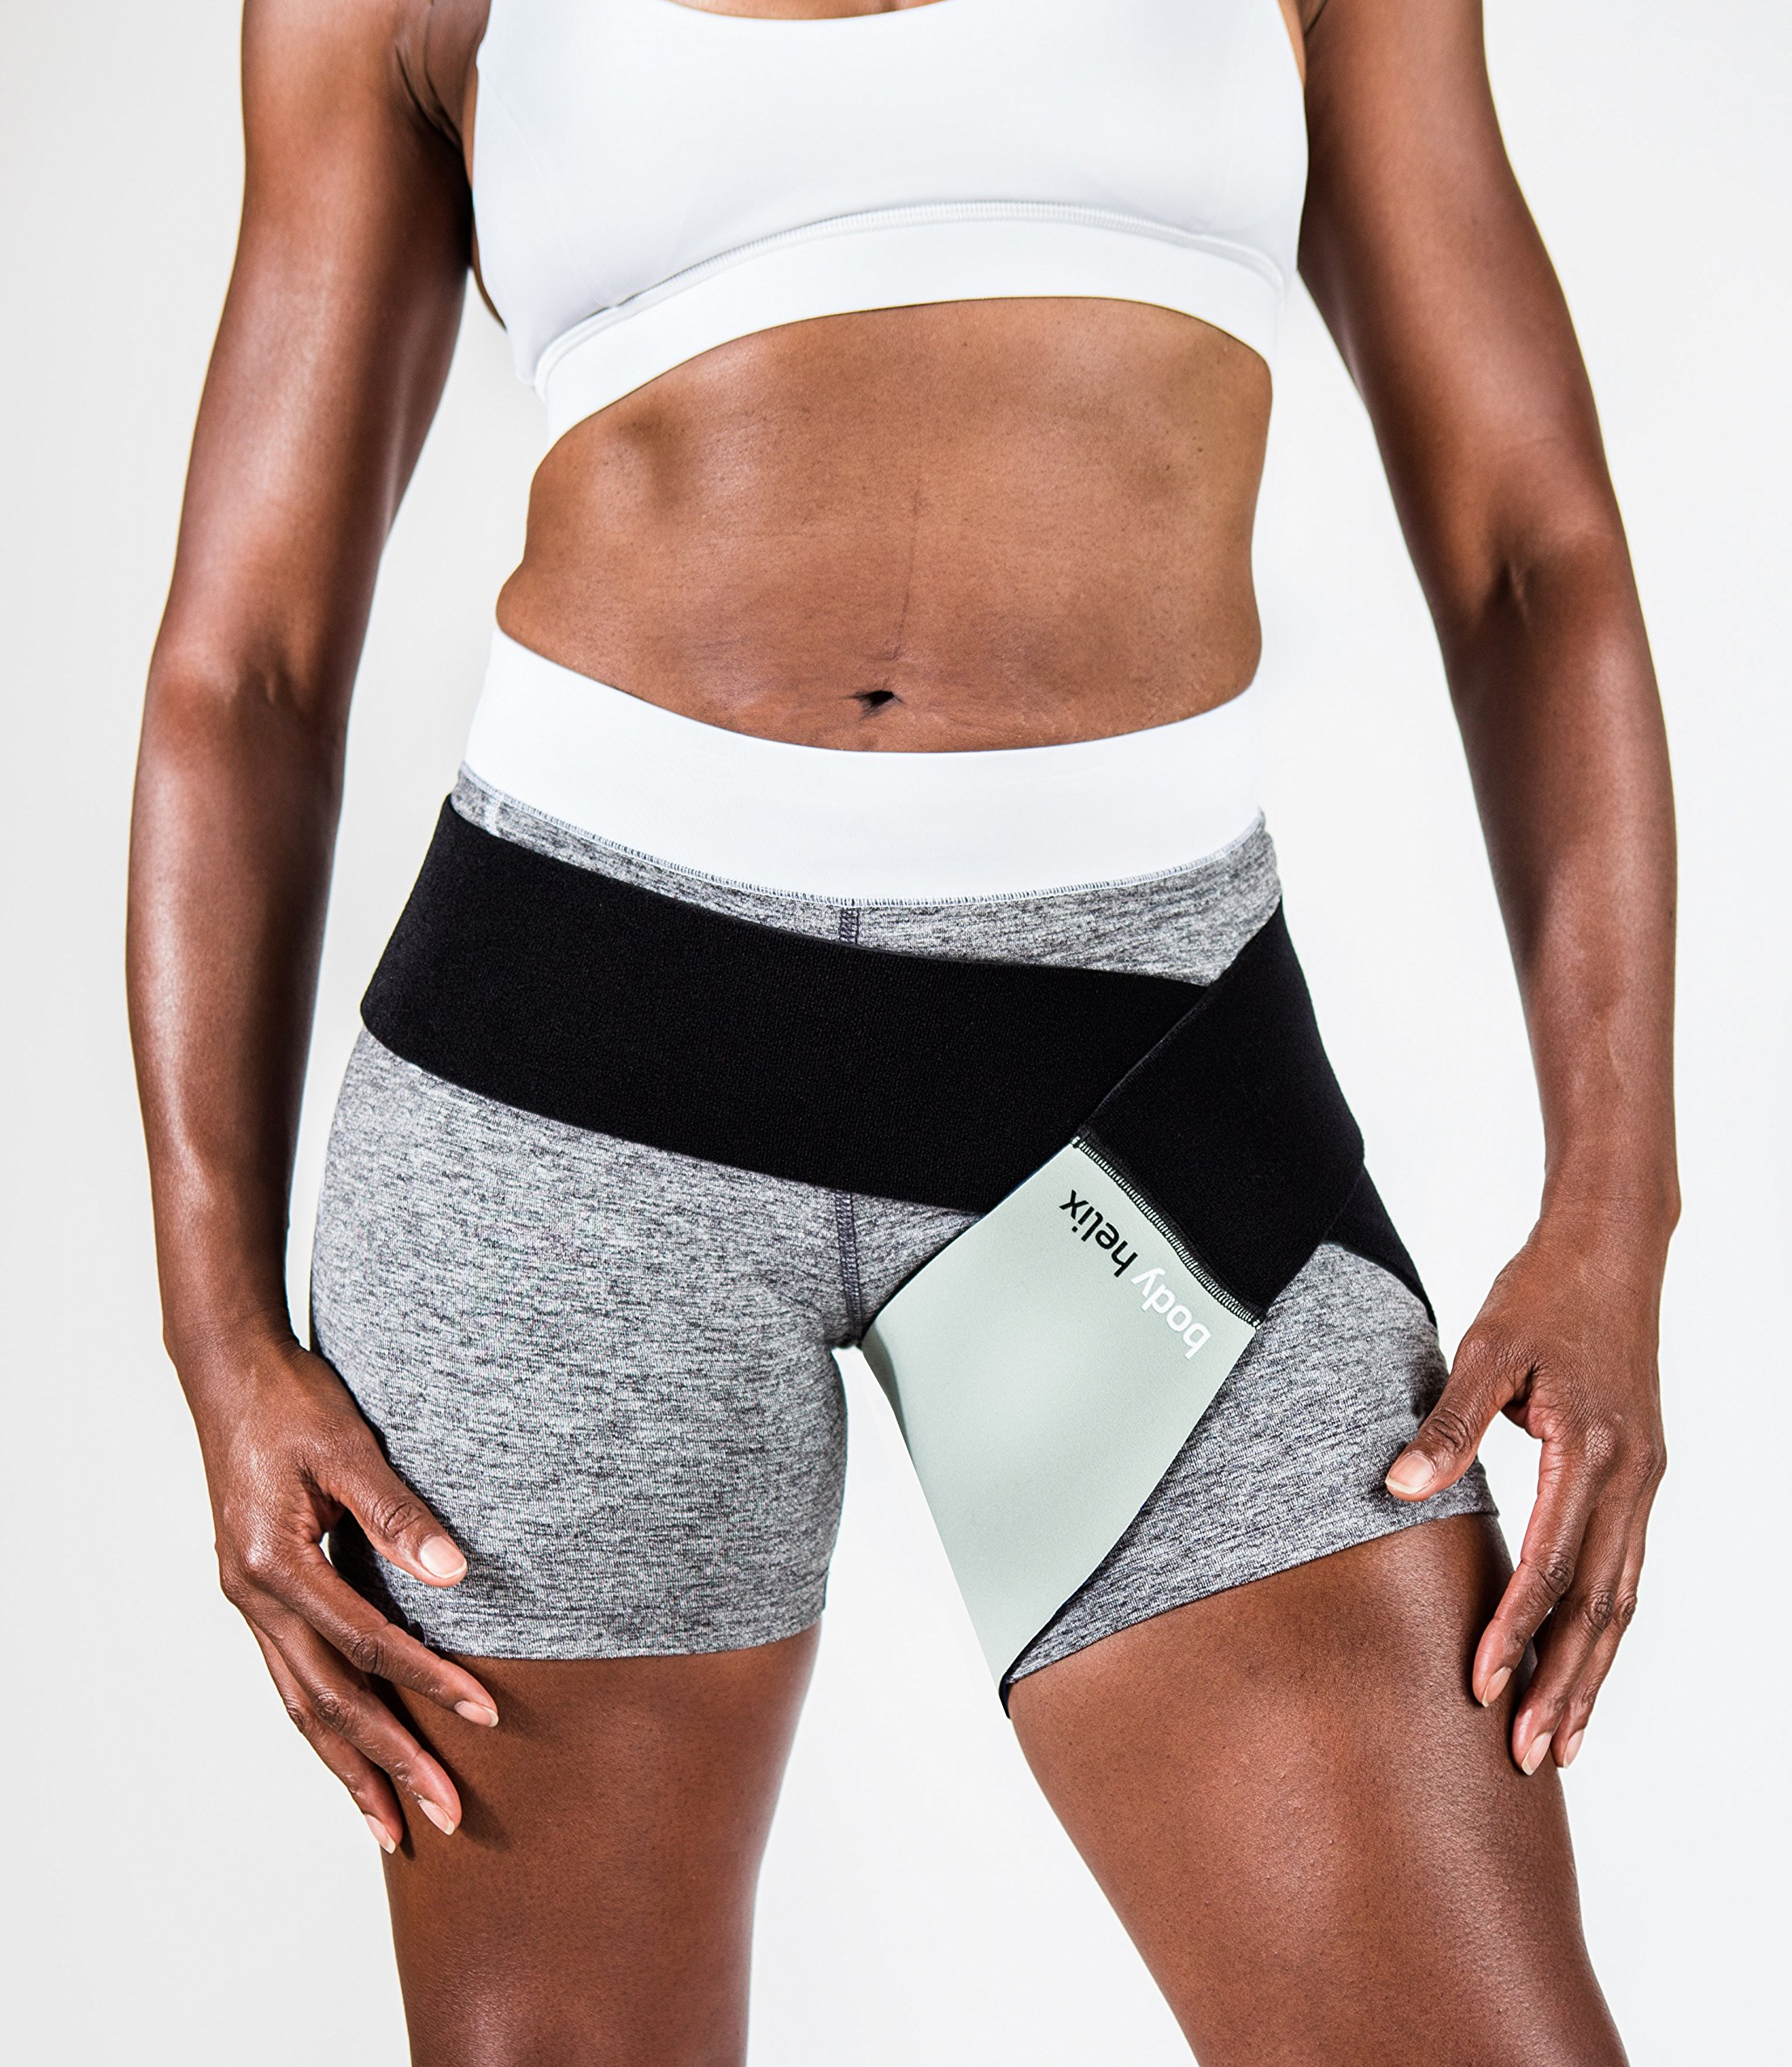 body helix Groin Muscle Support - Adjustable Groin Compression Wrap - Provides Exceptional Support to Injured Groin (Silver) by body helix